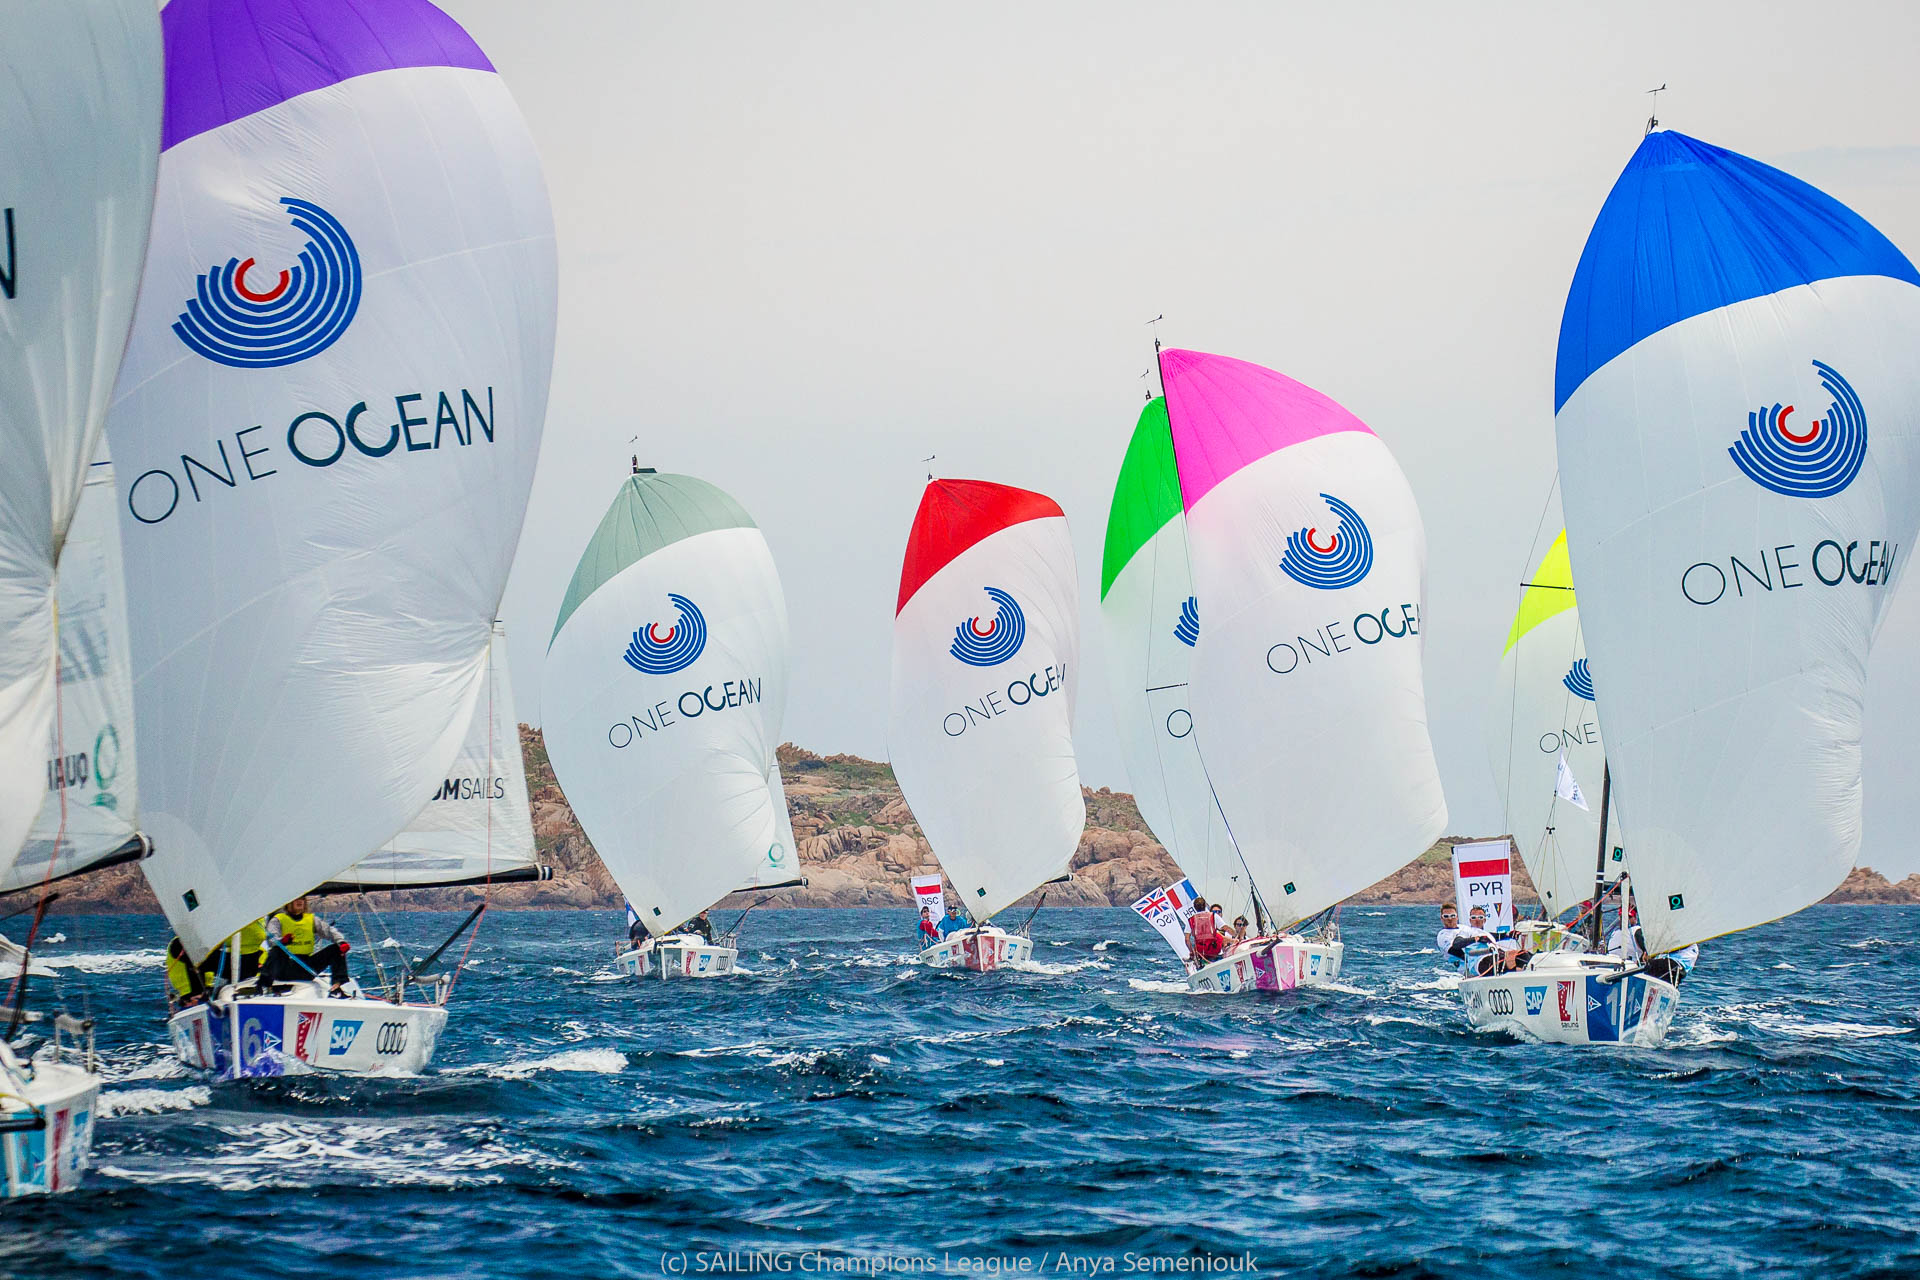 Circolo Della Vela Bari wins One Ocean Sailing Champions League  - NEWS - Yacht Club Costa Smeralda